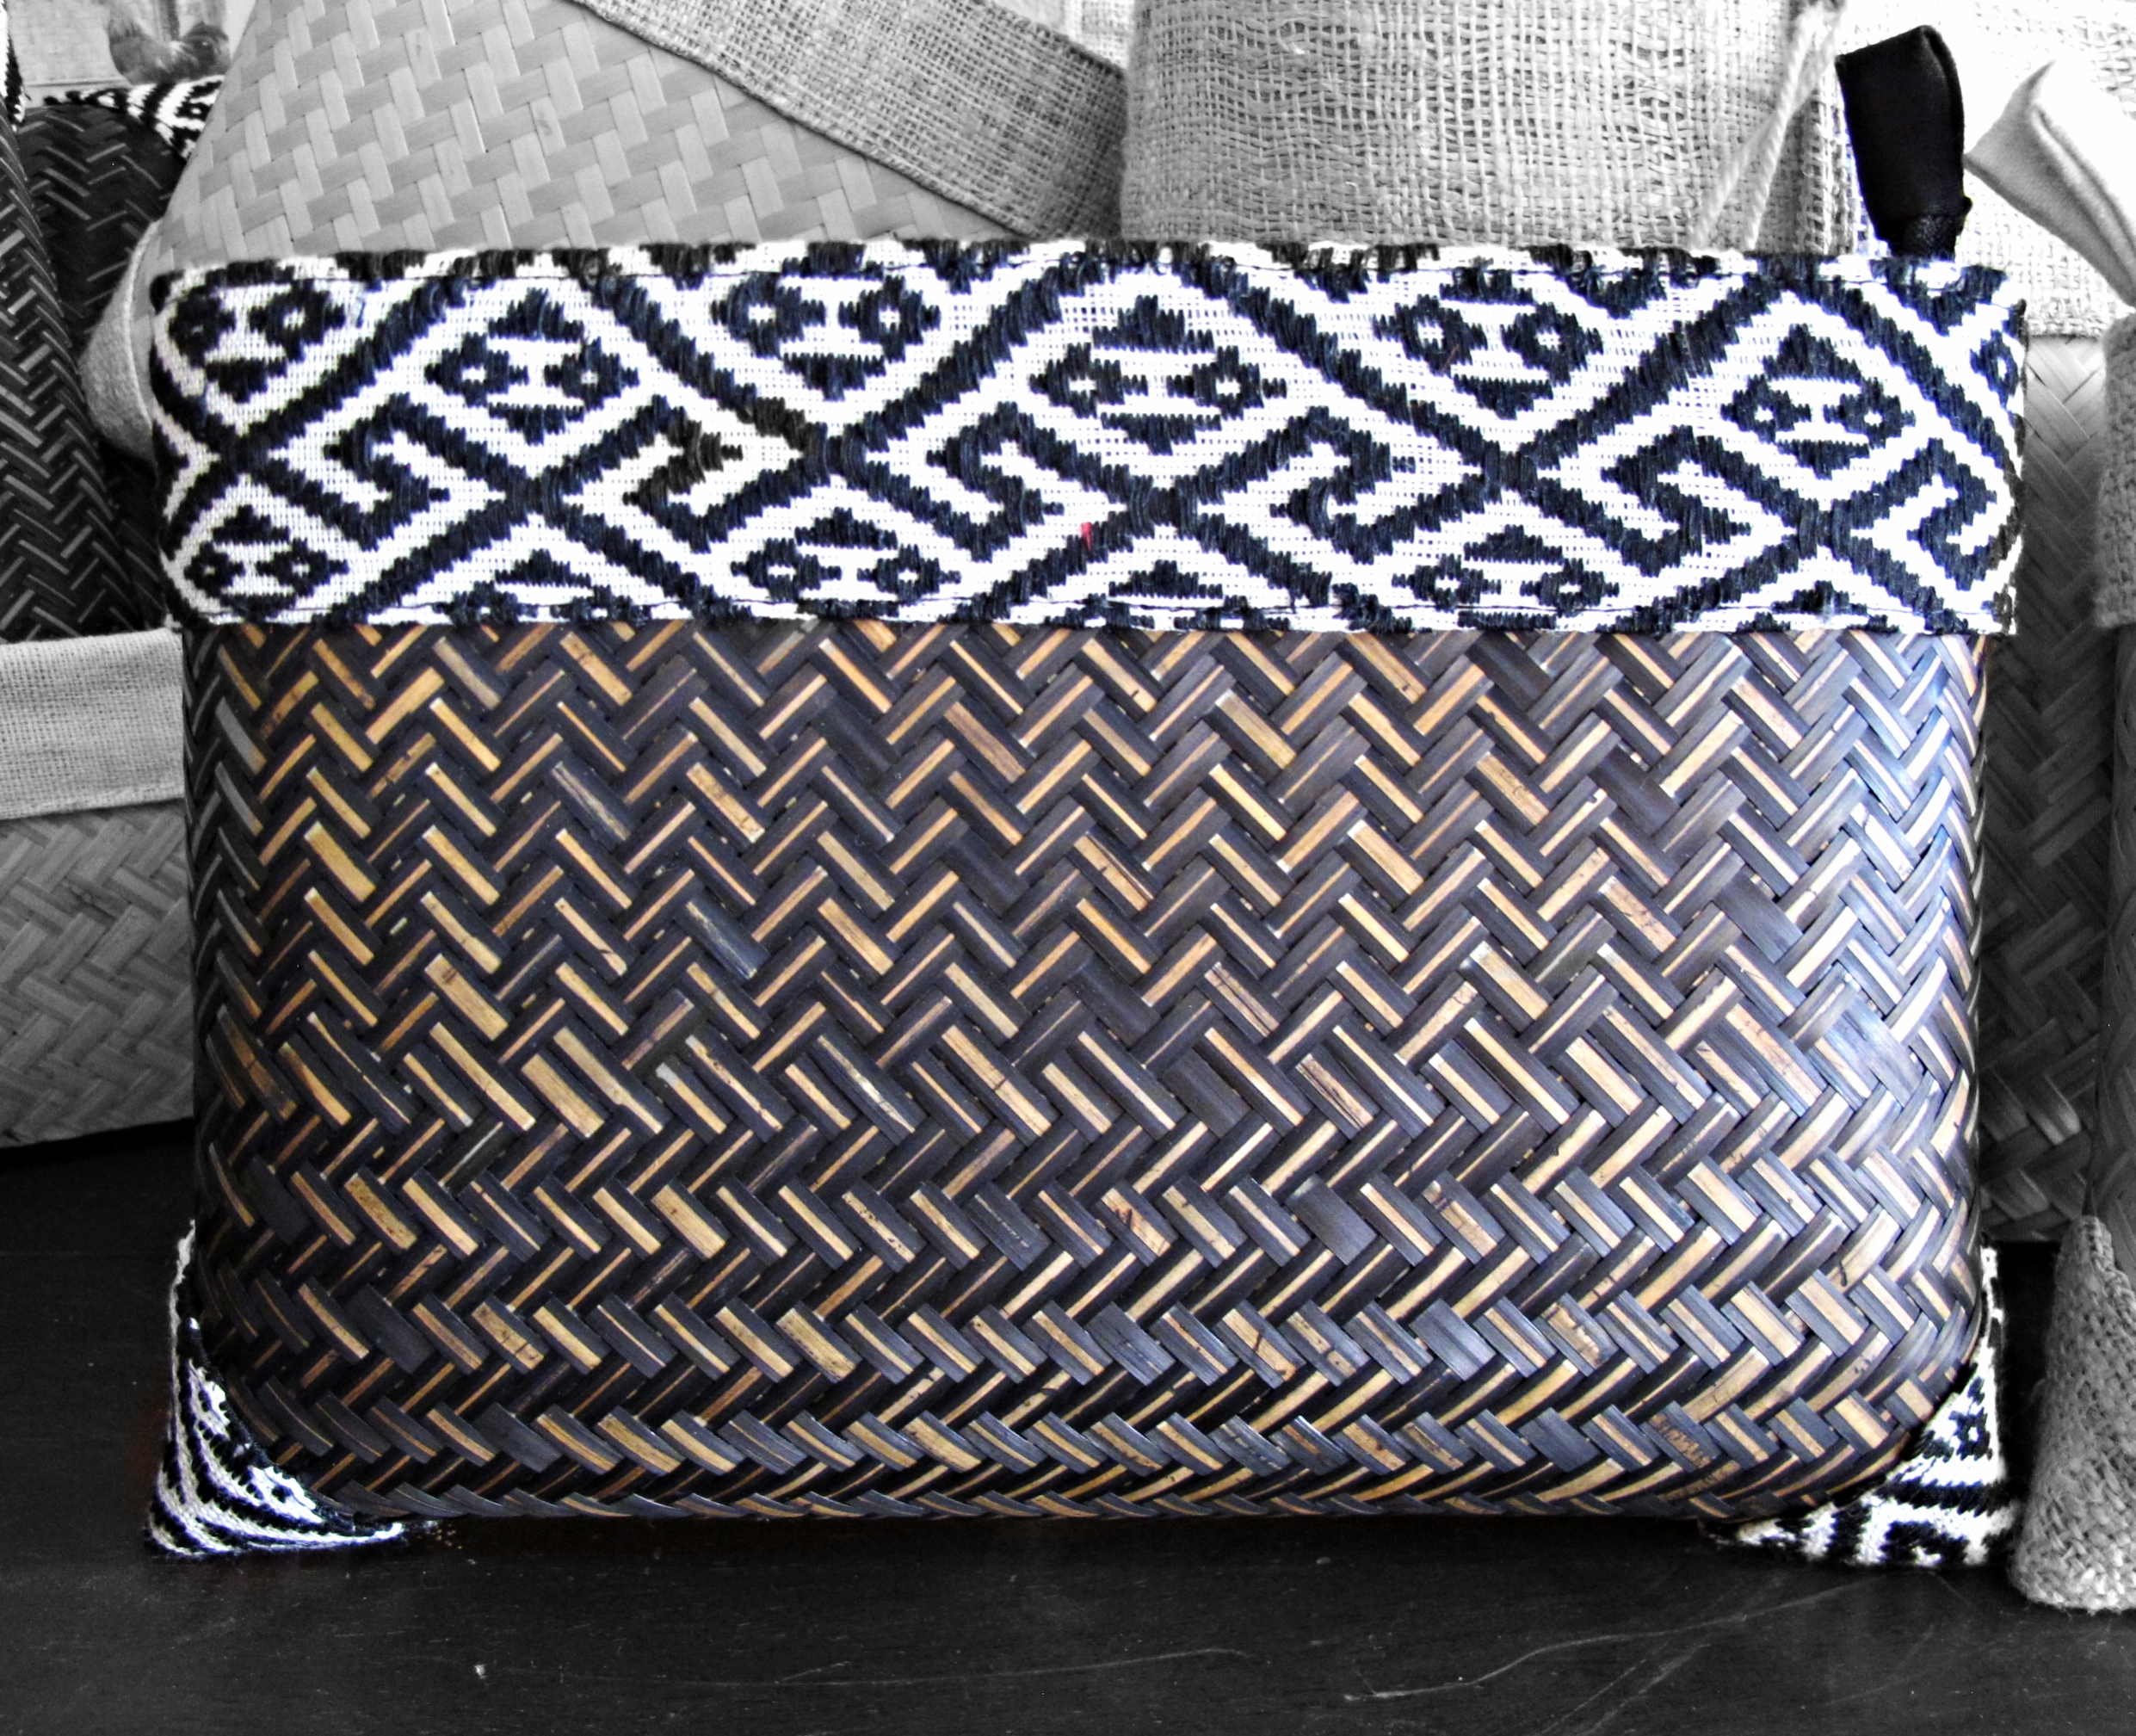 [Fishbone bamboo weave and I wonder how it was made with alternating light dark. Following the weave of the hemp patterned trim and my curiosity wanders, wondering whose artisan hands crafted this, her name and about her life. Bamboo clutch handcrafted by women of the Tai Lao ethnic group, Phonsong Village. Curated by  Ma Te Sai .]